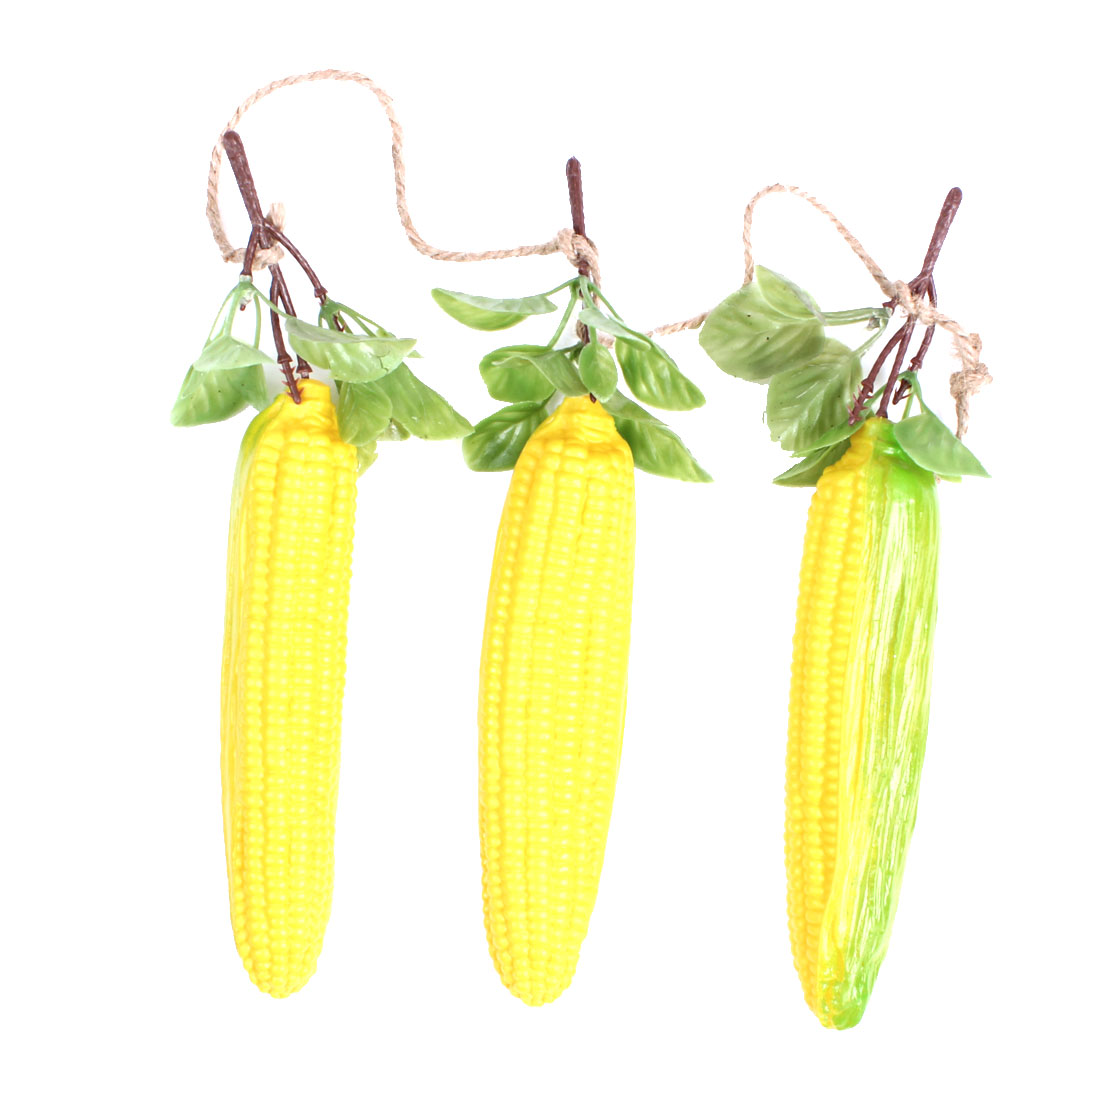 Artificial Plastic Corn Hanging Vine for Home Garden Decor